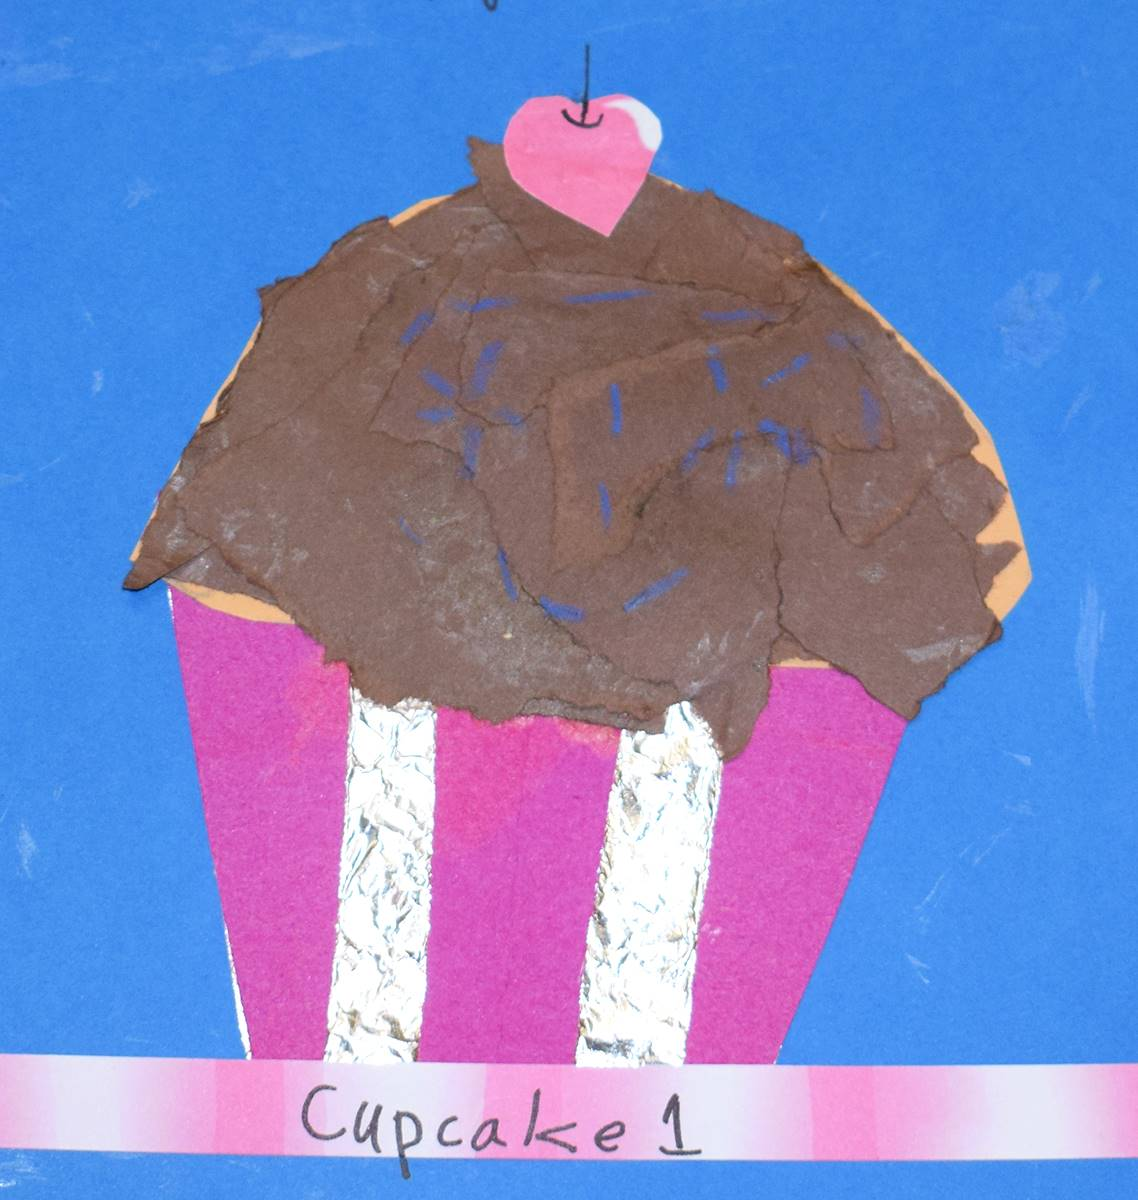 A mixed media artwork of a chocolate cupcake with red cherry on top in a pink and silver wrapper.